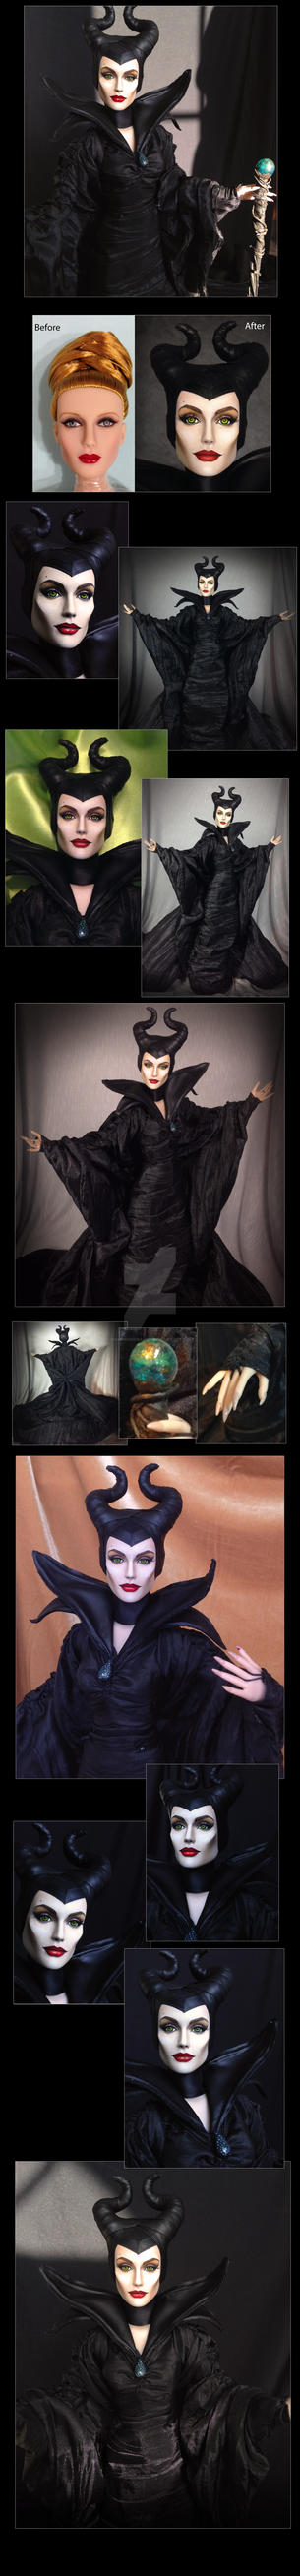 OOAK Custom Angelina Jolie Tonner Maleficent Doll by ShannonCraven